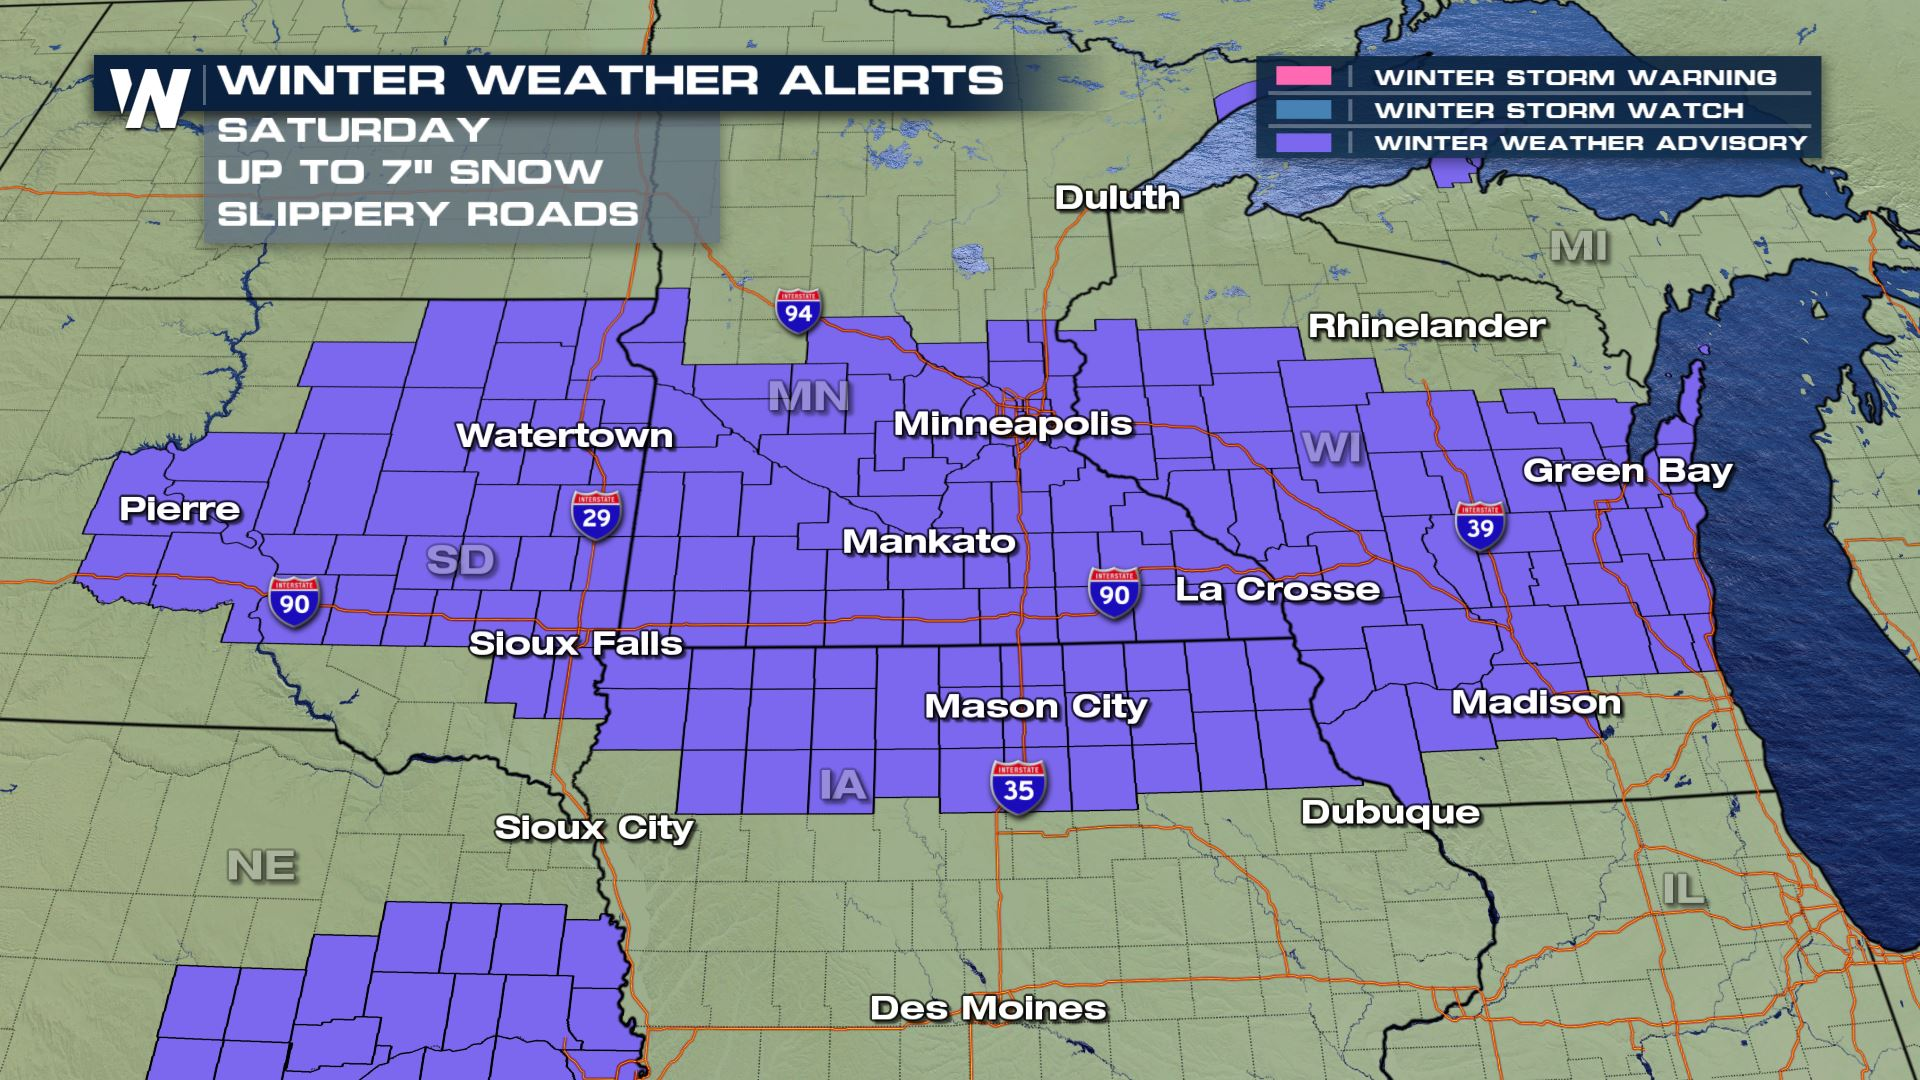 Snow to Start the Weekend in the Midwest